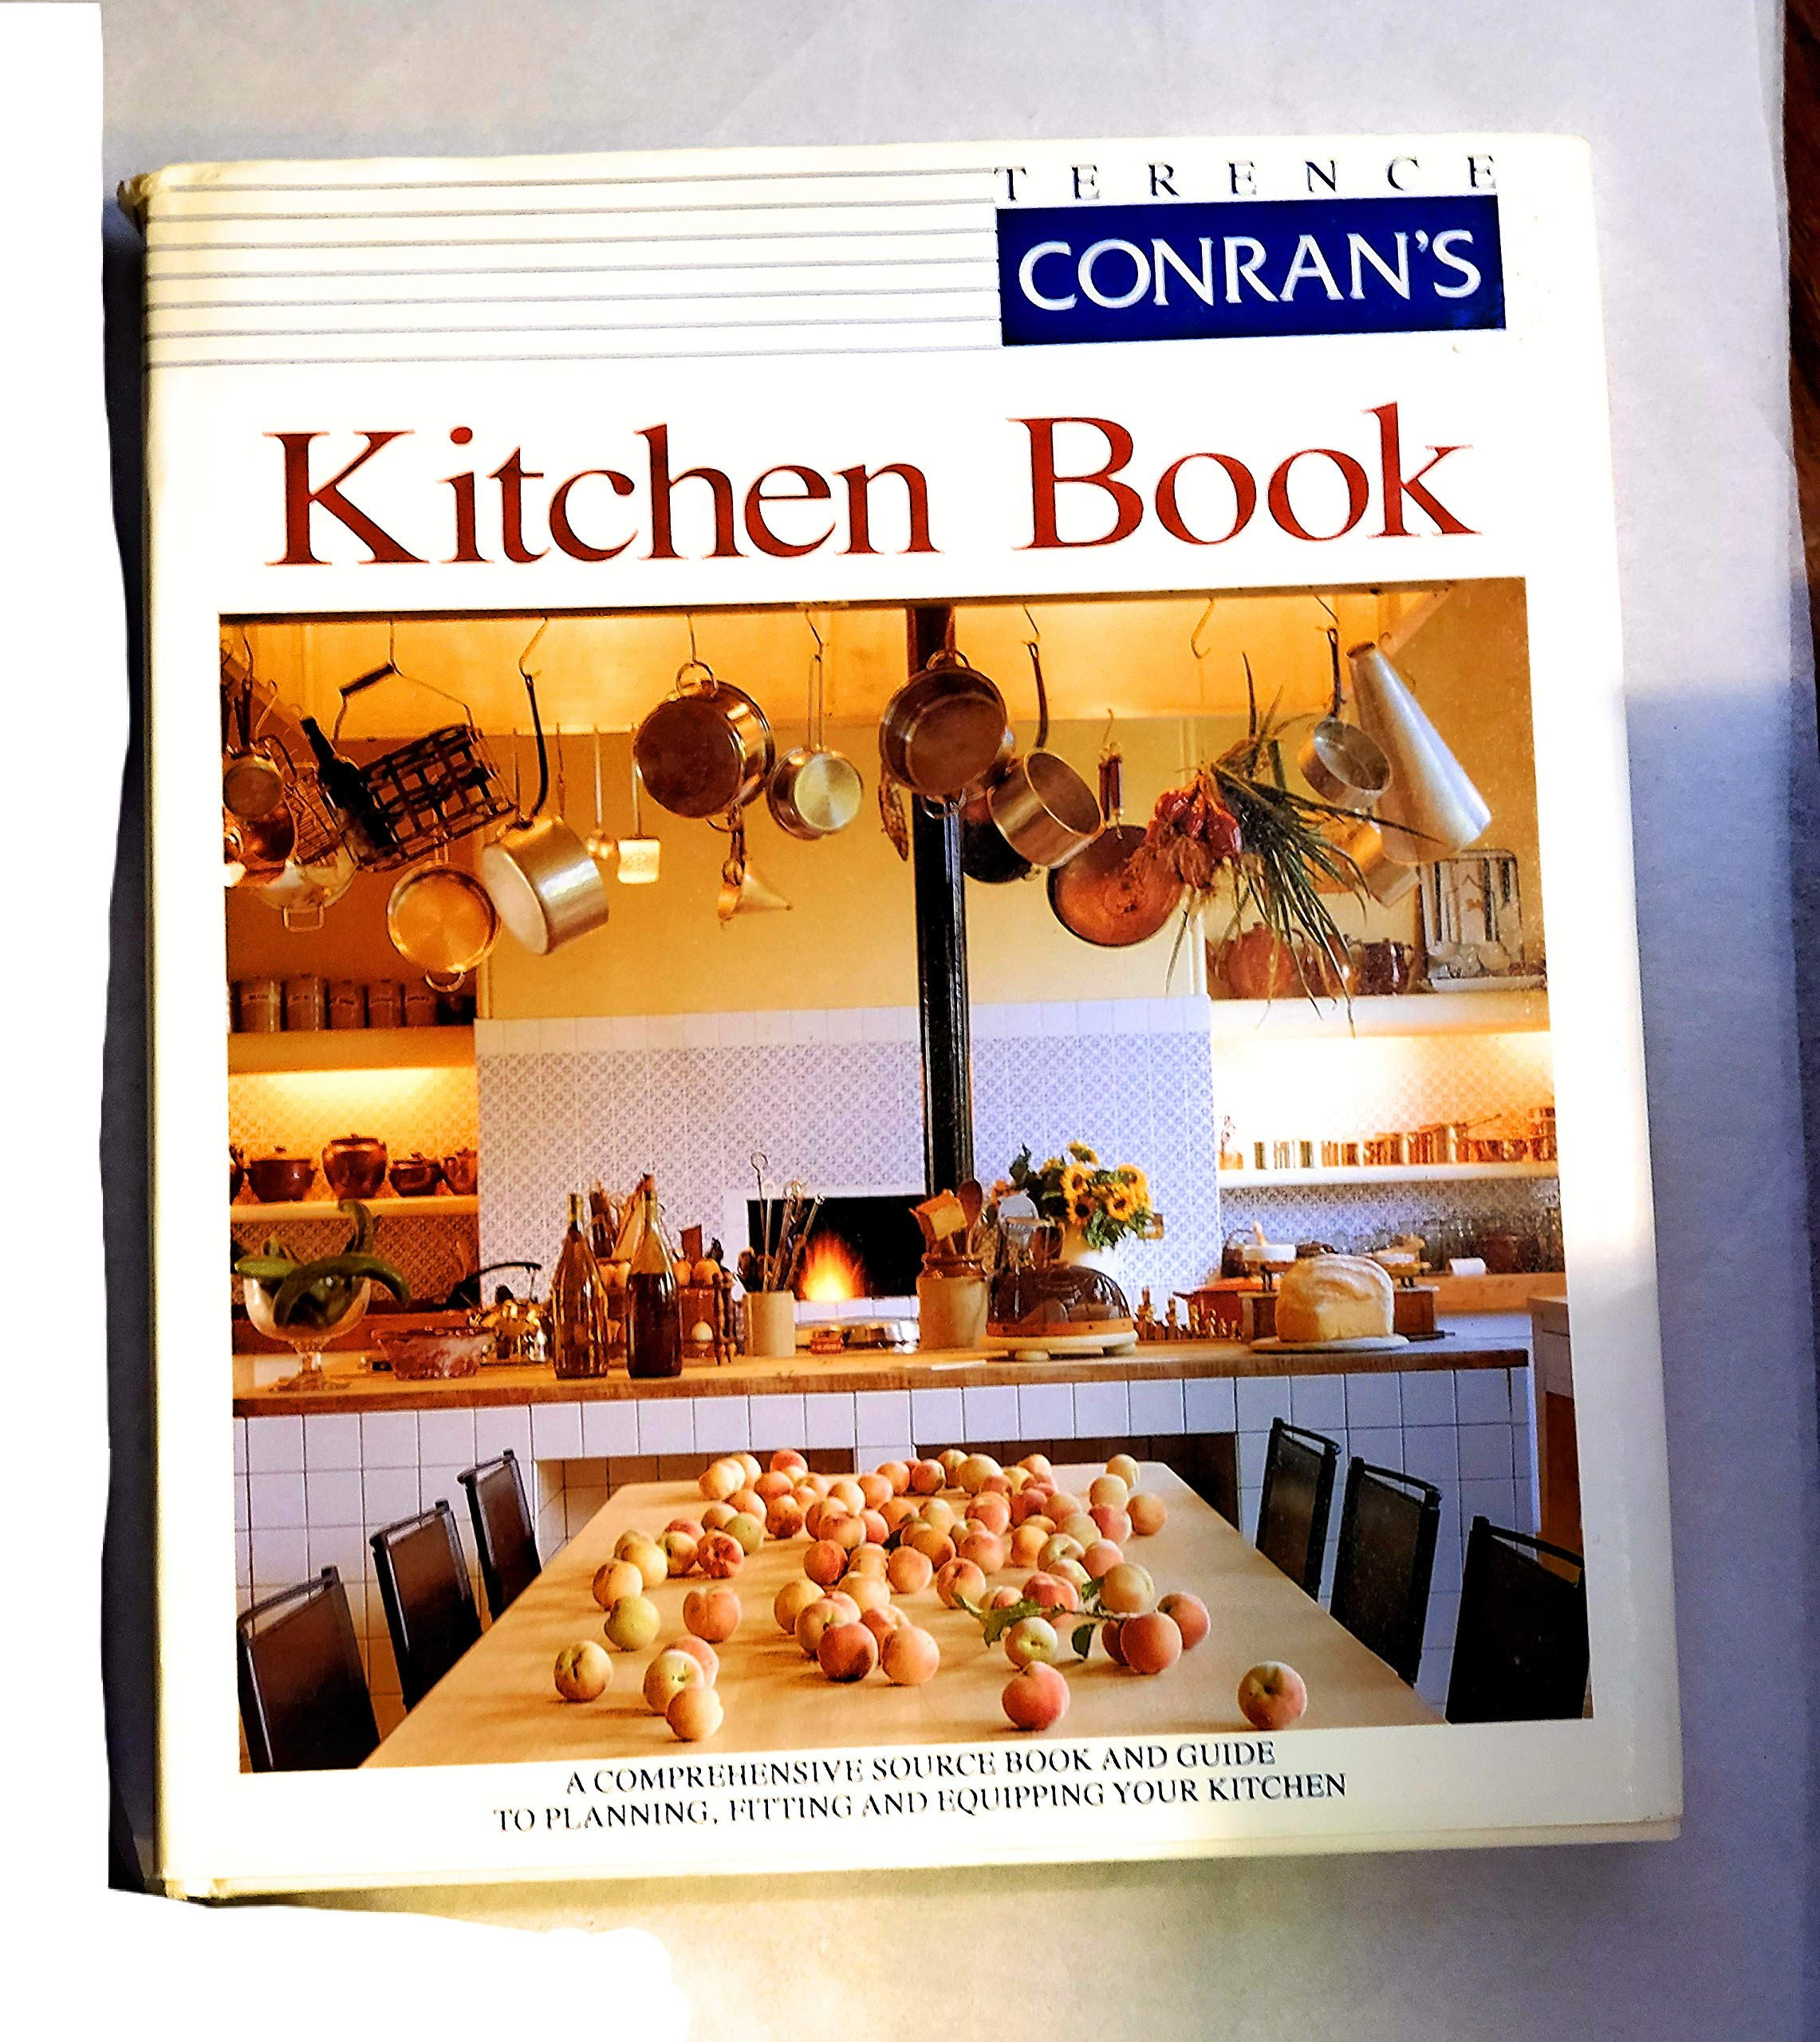 Terence Conran S Kitchen Book A Comprehensive Source Book And Guide To Planning Your Kitchen Amazon De Wilhide E Smith Morant D Conran Terence Fremdsprachige Bucher